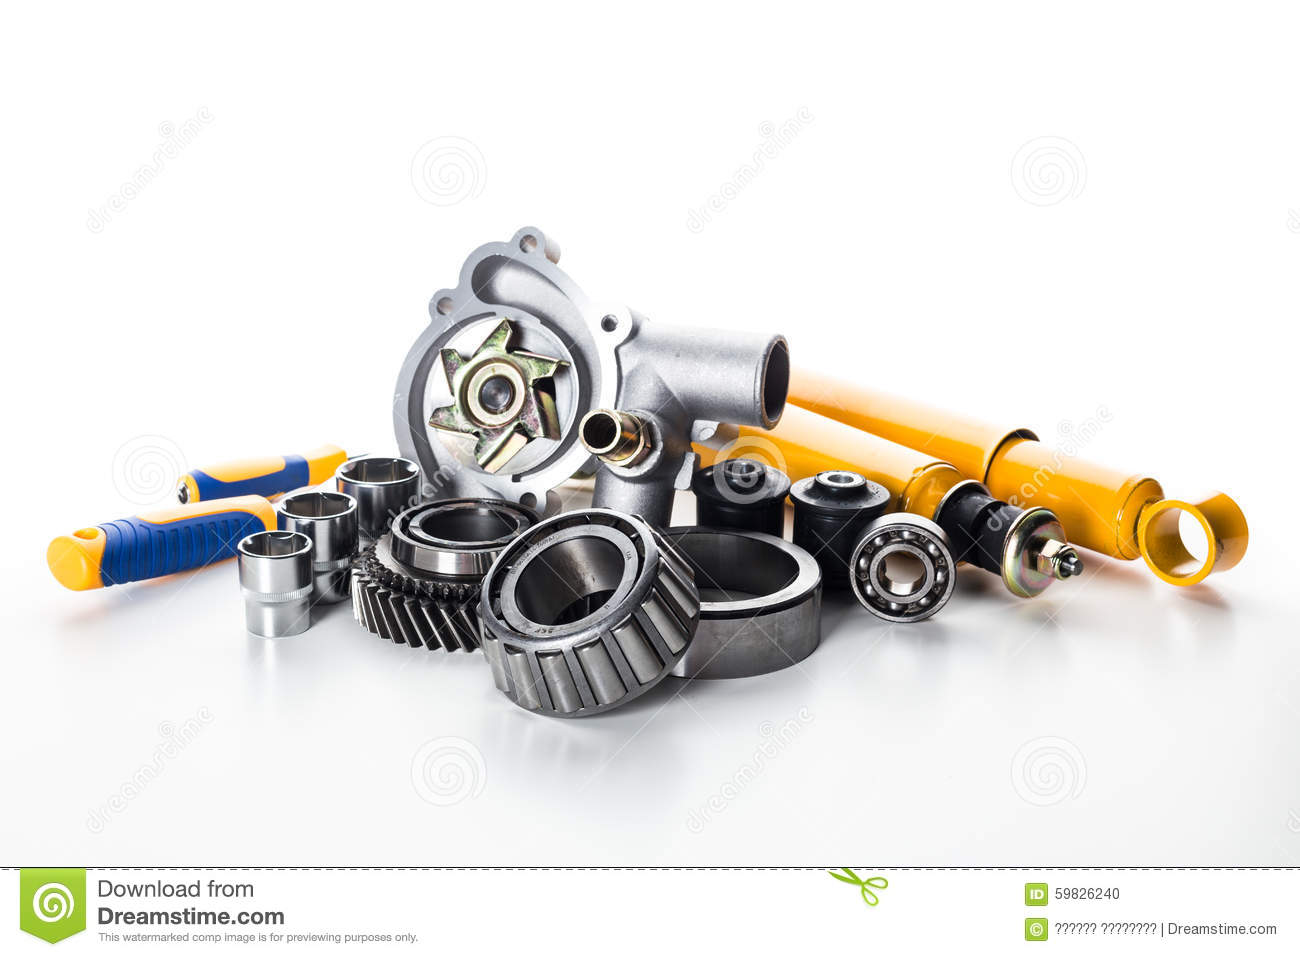 Car parts isolated stock photo. Image of section, white - 59826240